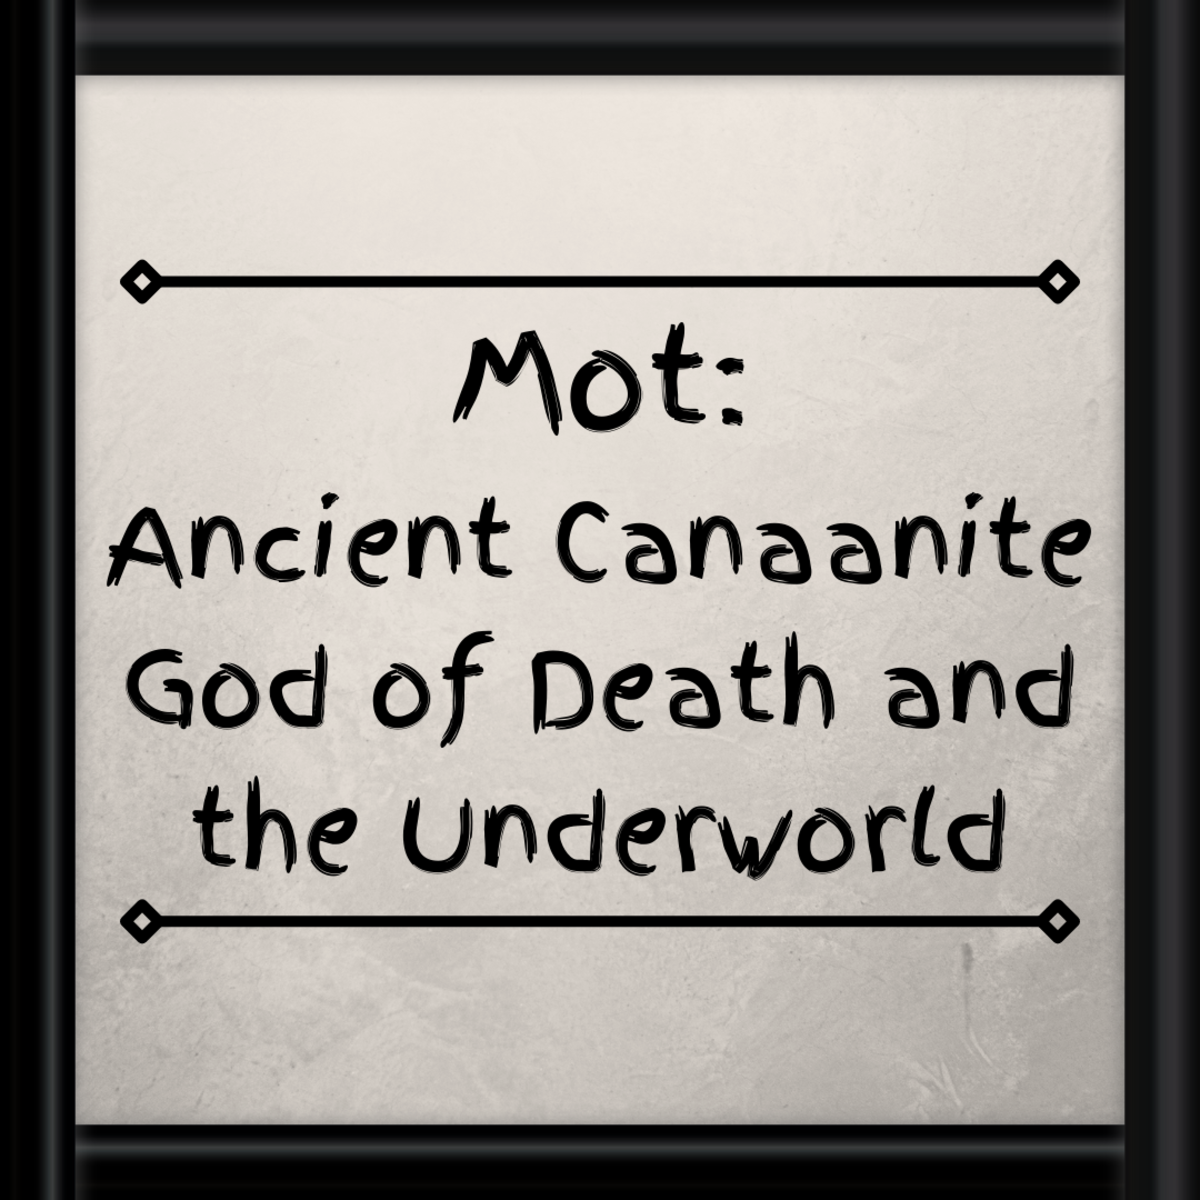 Mot was the ancient Canaanite god of death and the Underworld. He shared similarities with the Devil, is thought to be present in the Bible, and may have been the inspiration for the Grim Reaper.